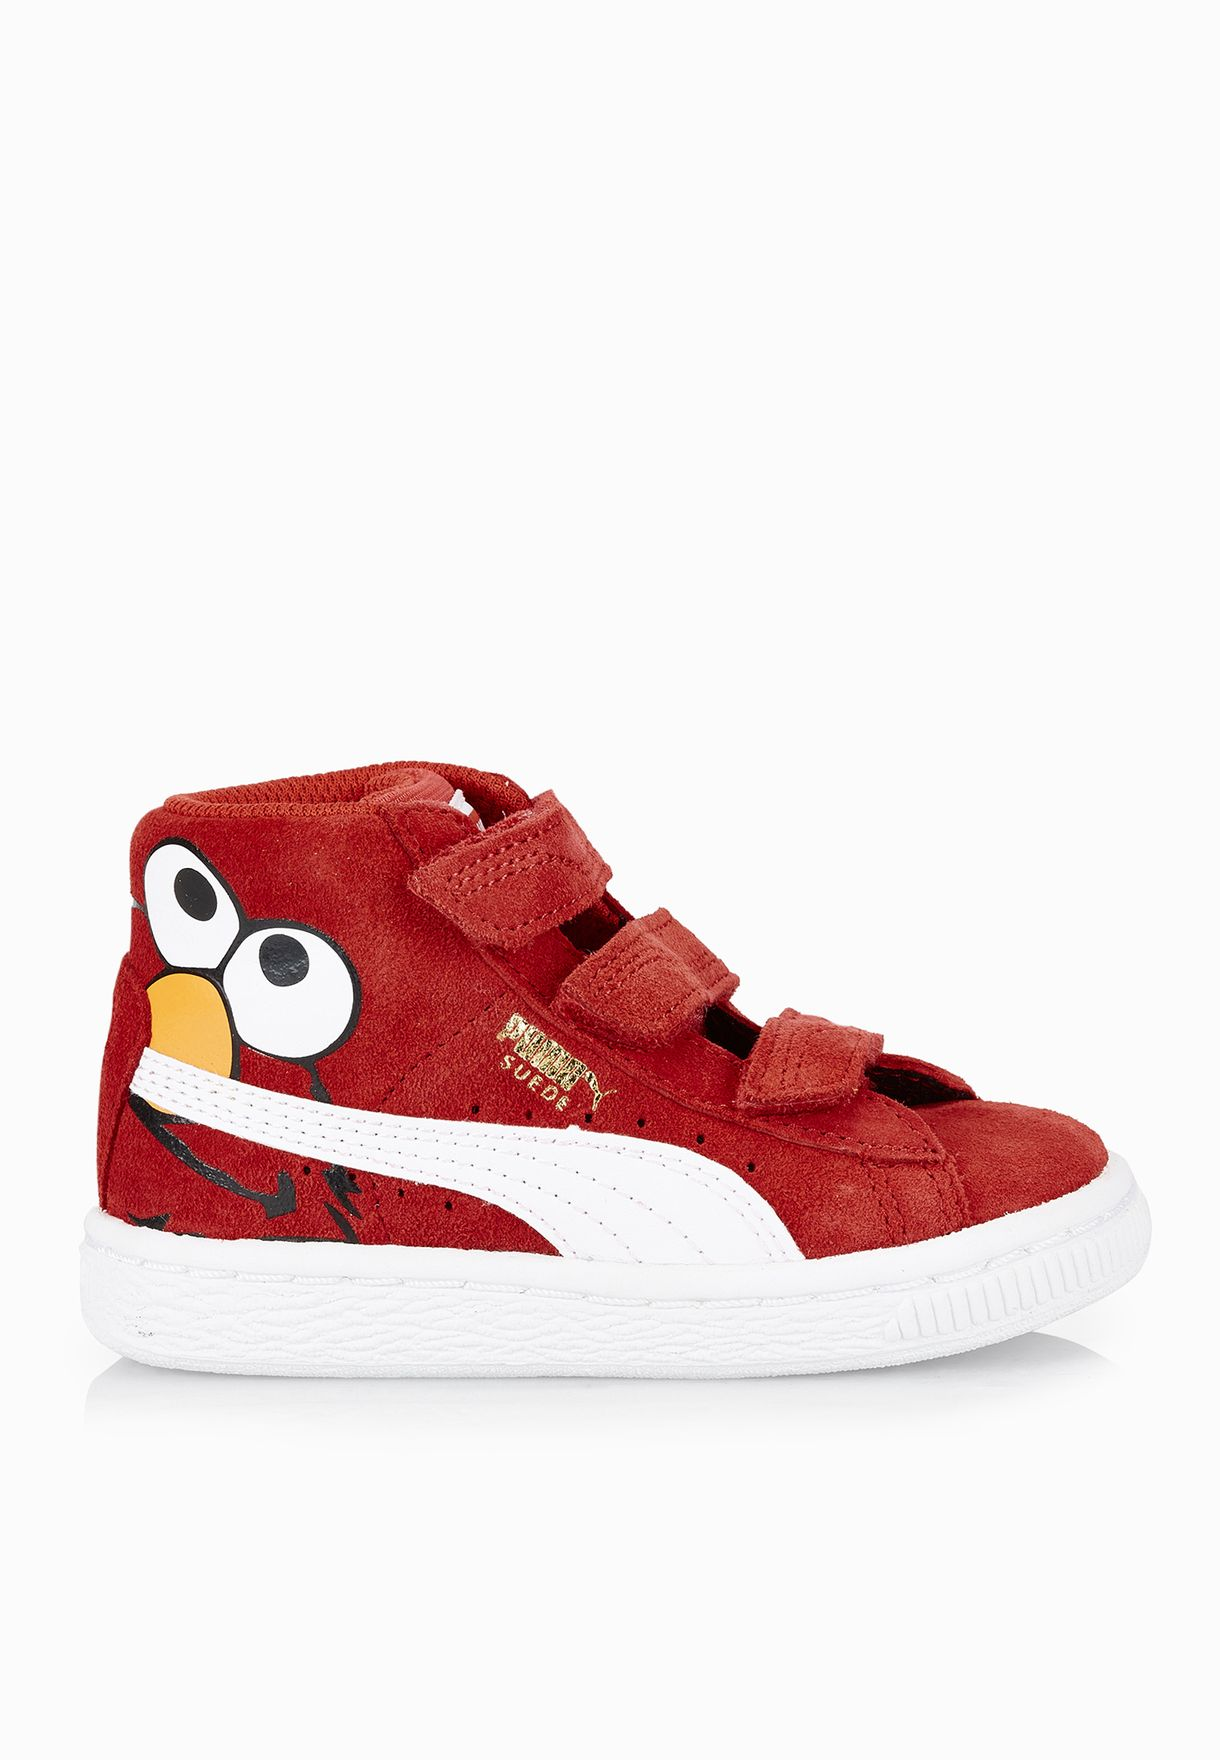 b263bfd43c0d Shop PUMA red Suede Sesame Elmo V Infant 36126601 for Kids in Qatar -  PU020SH79ZZK